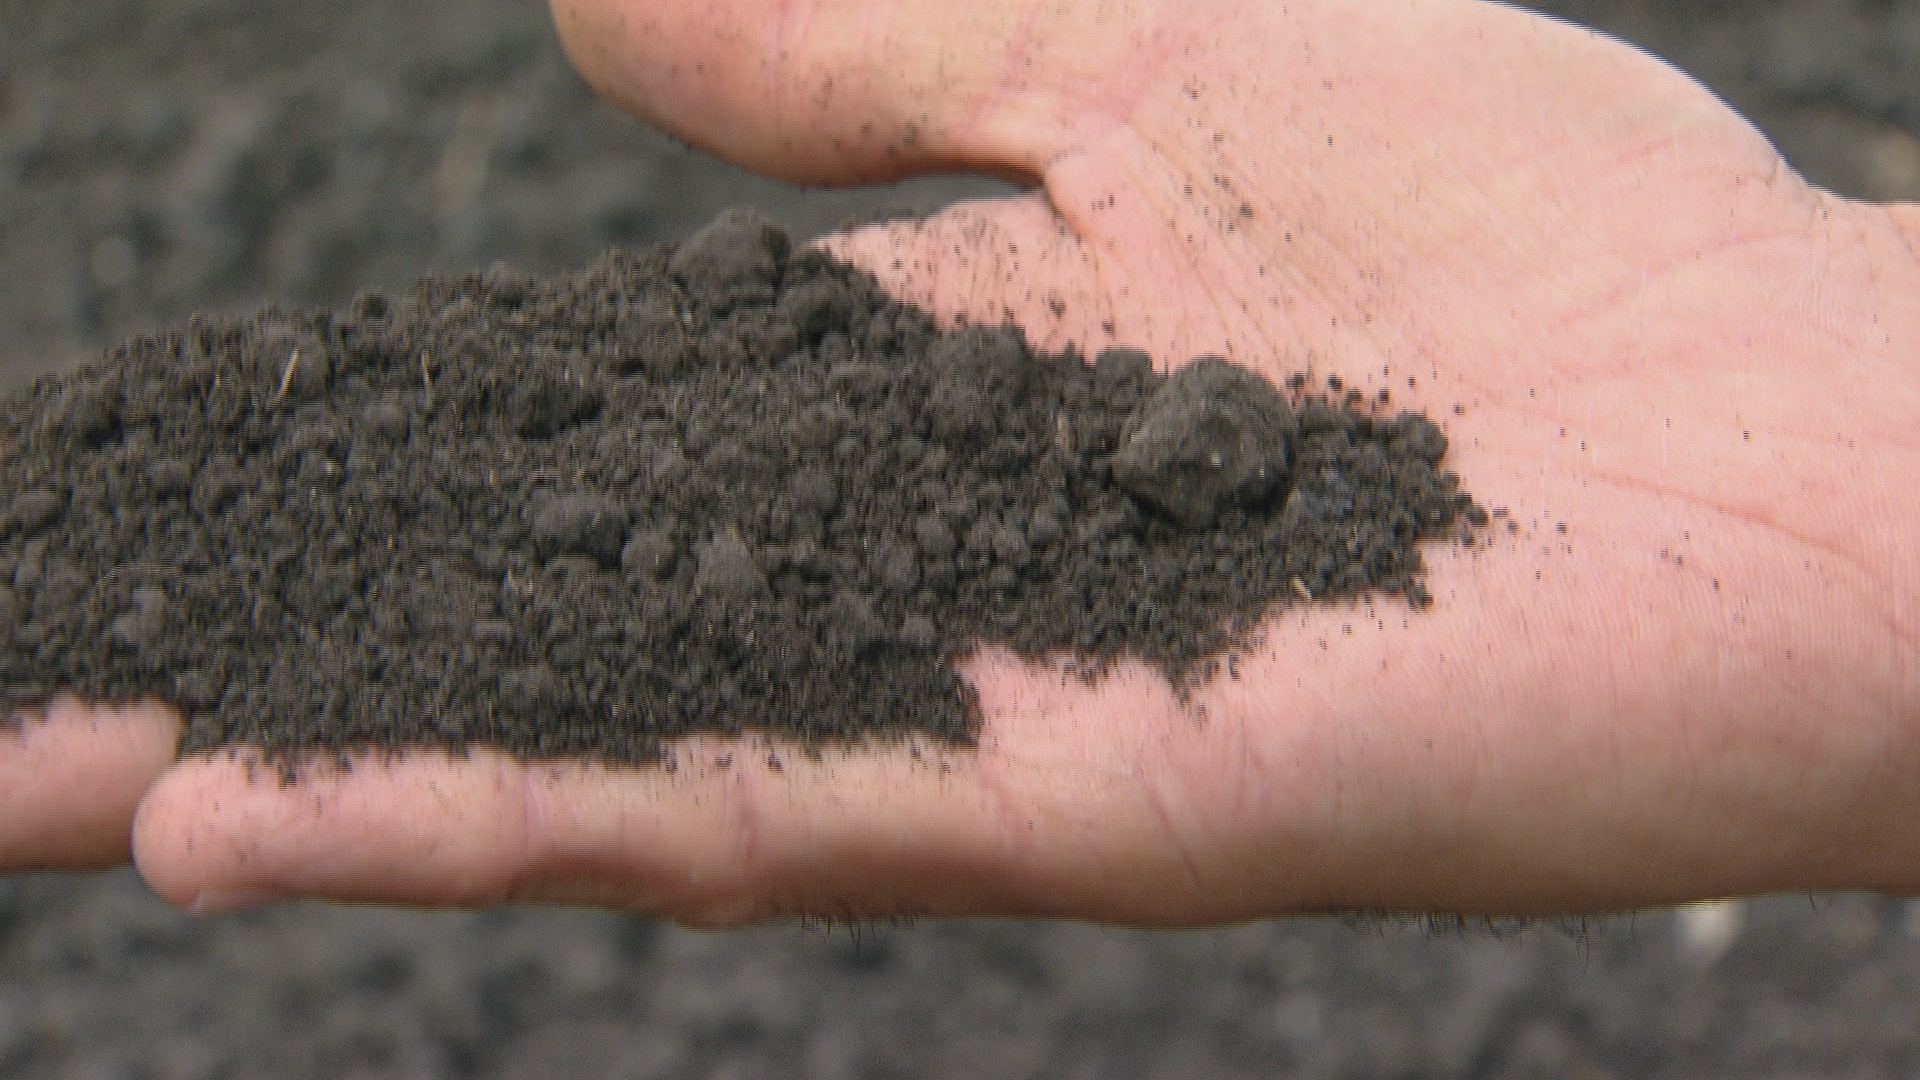 Human waste material - photo#20